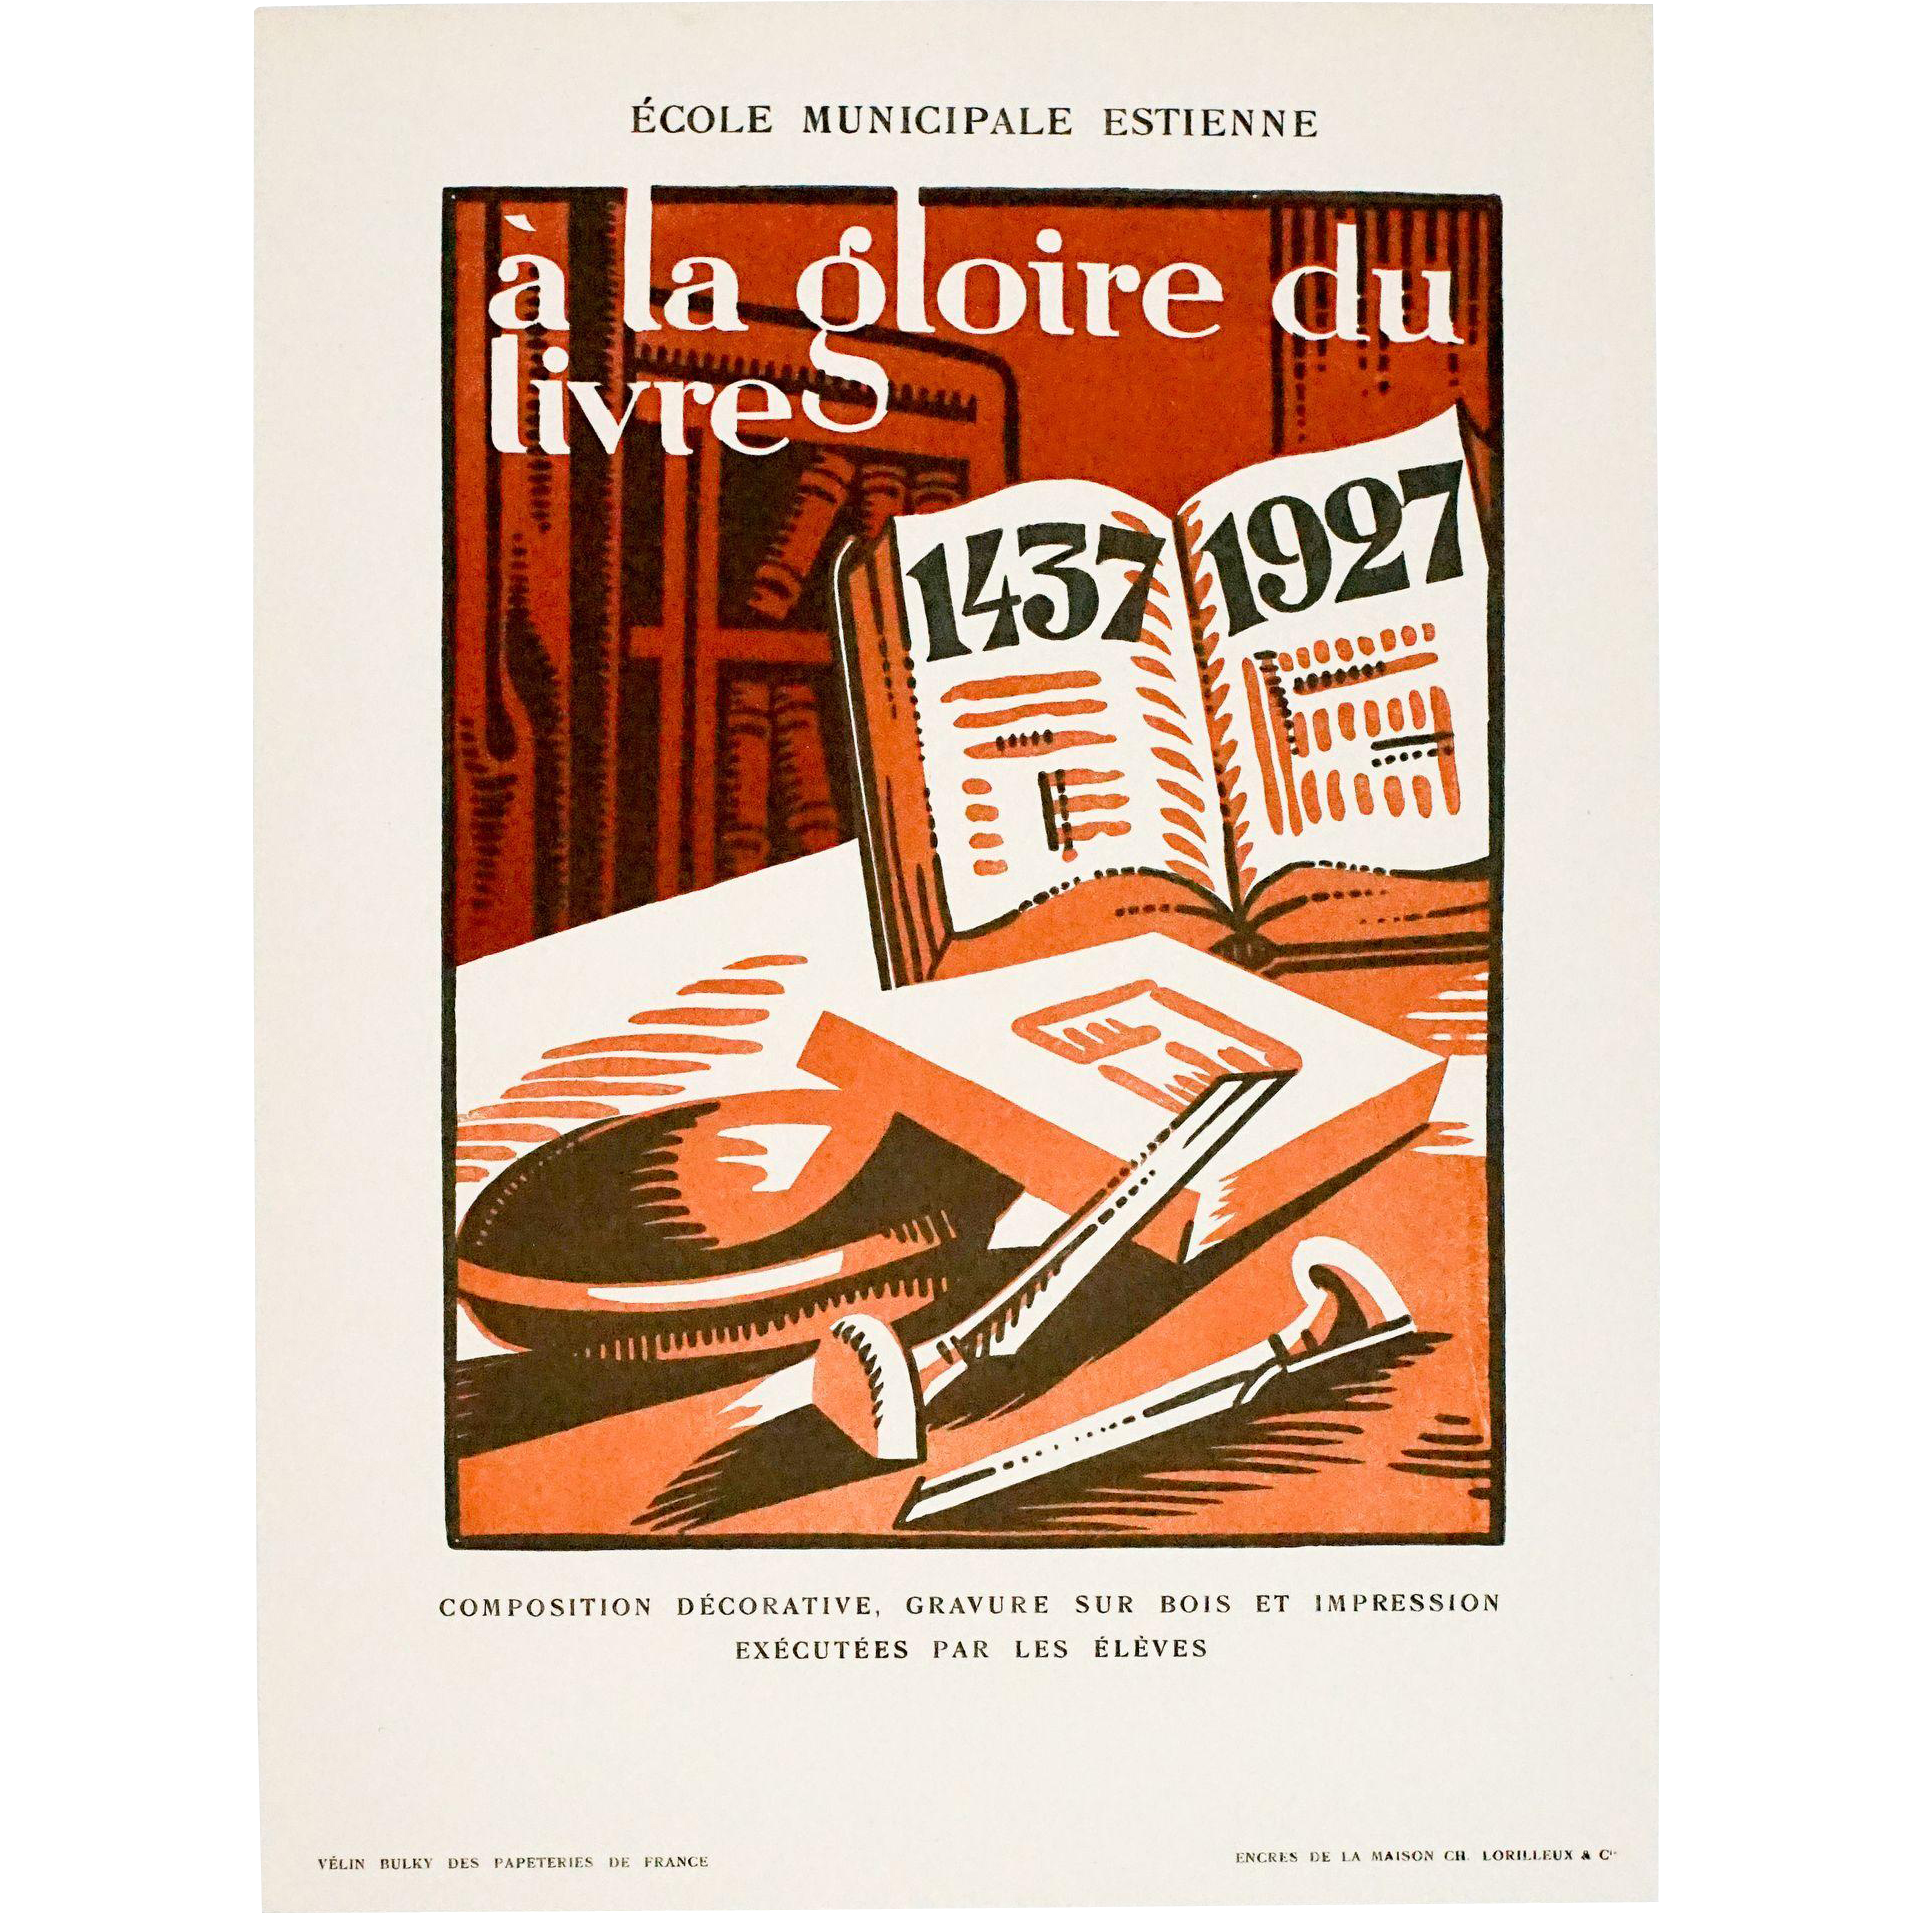 Striking Vintage Art Deco Graphic, Gloire du Livre 1437-1927